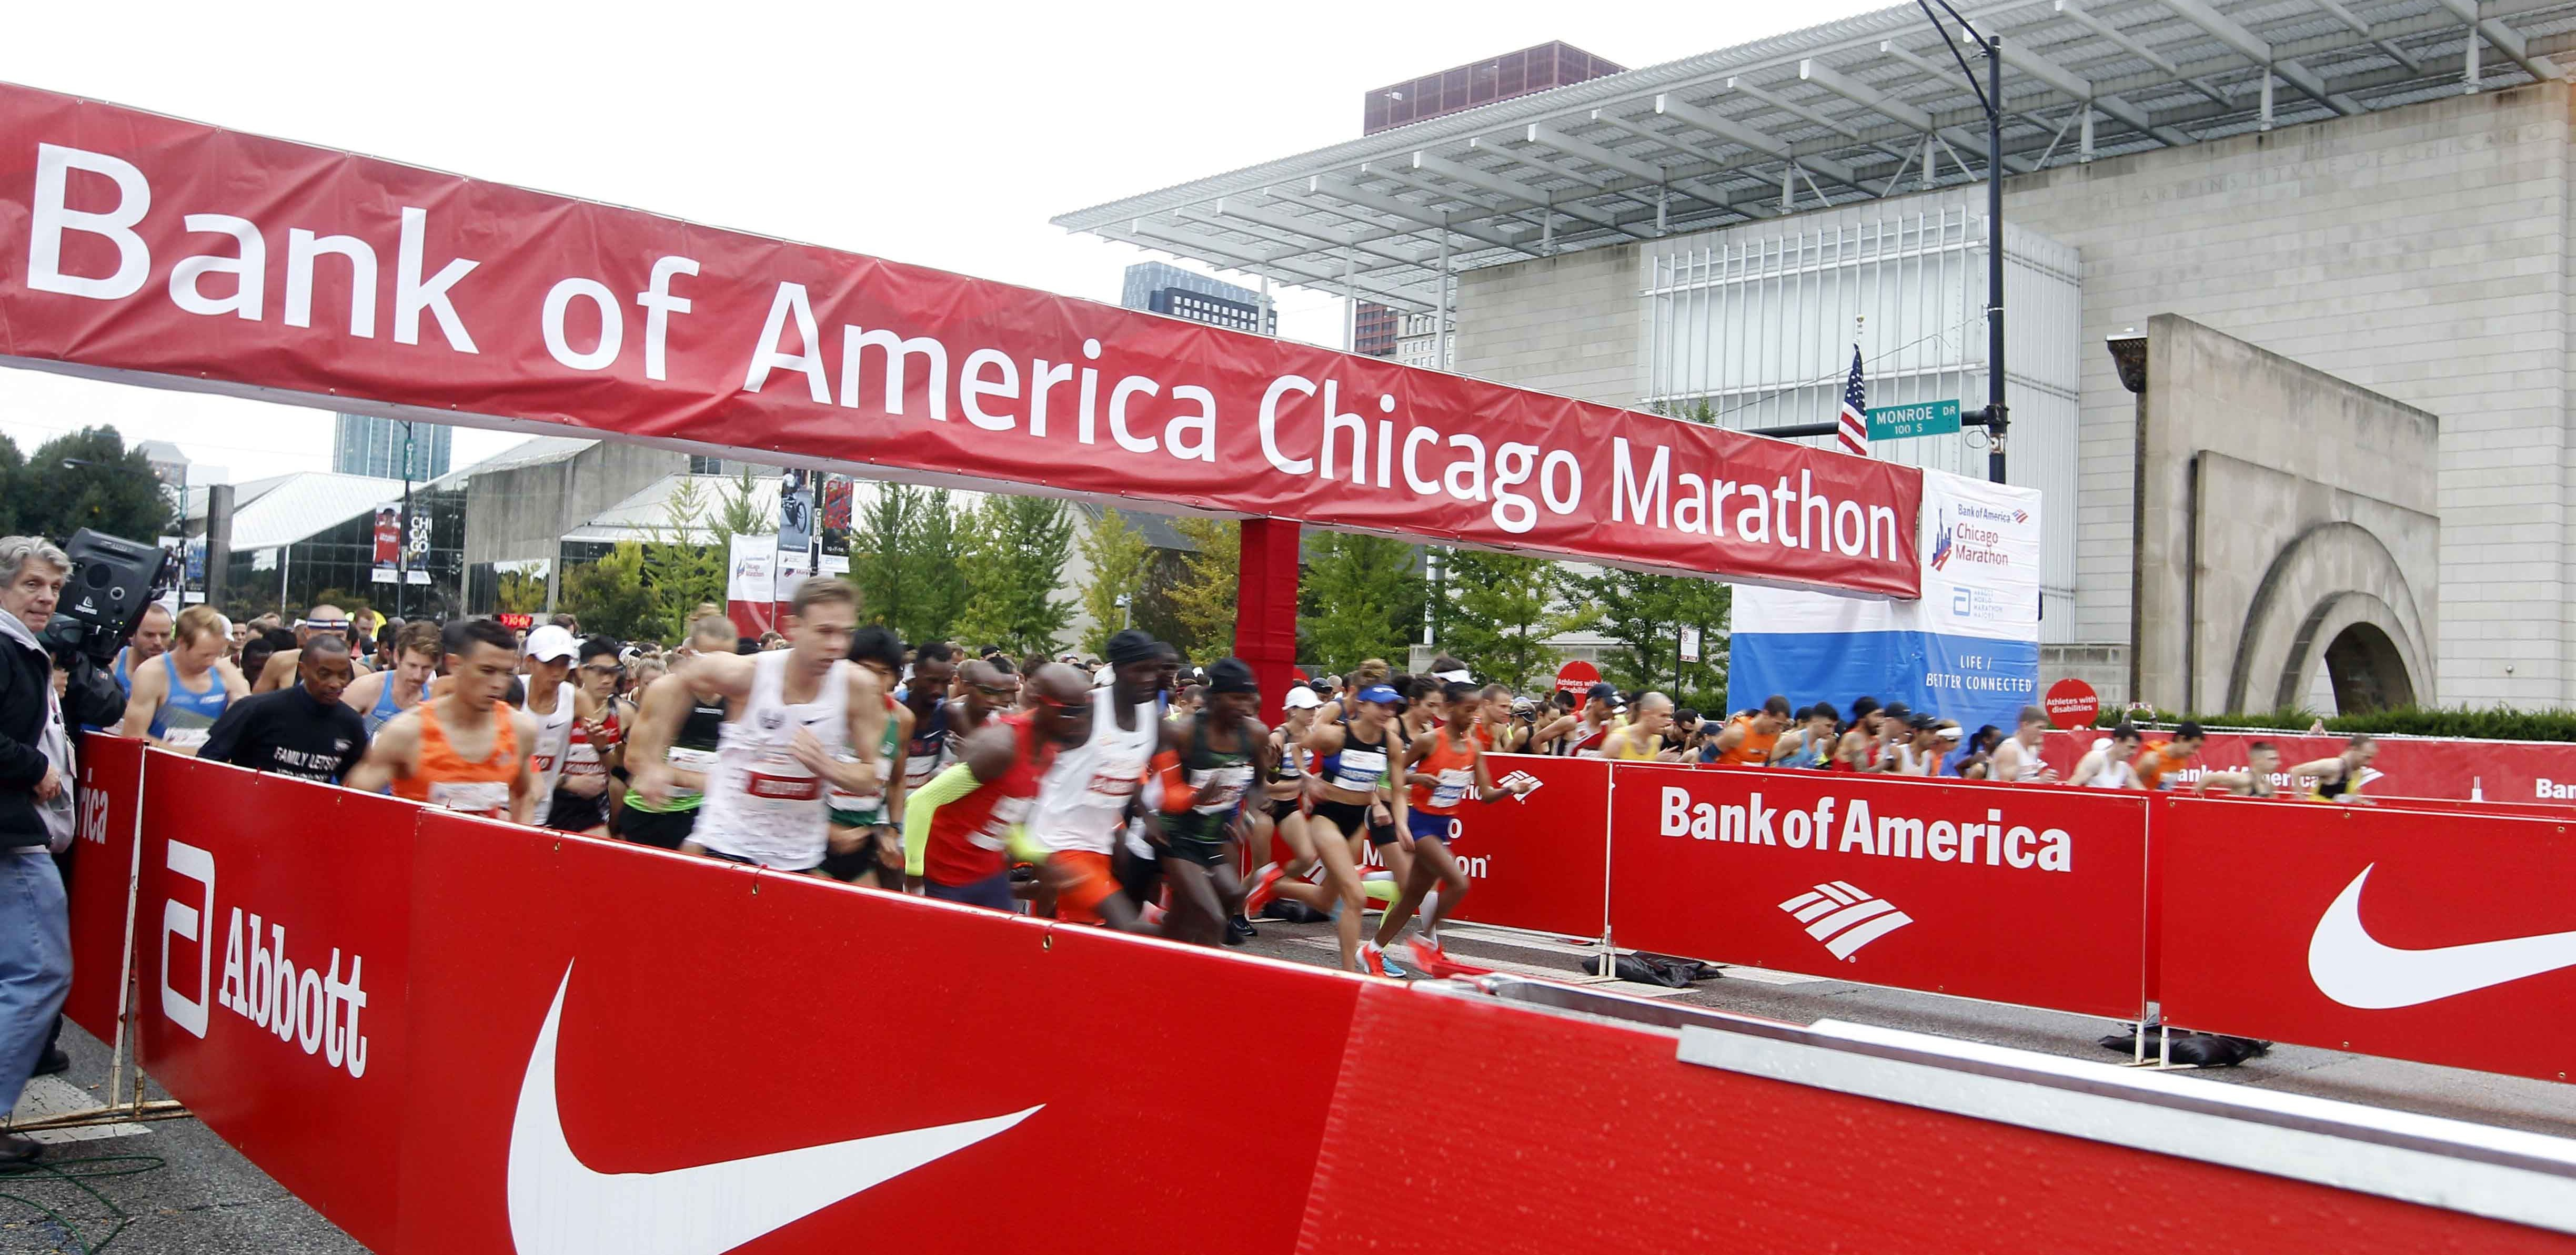 The forecasted ideal temperatures will aid fast times at Chicago Marathon however it could be windy